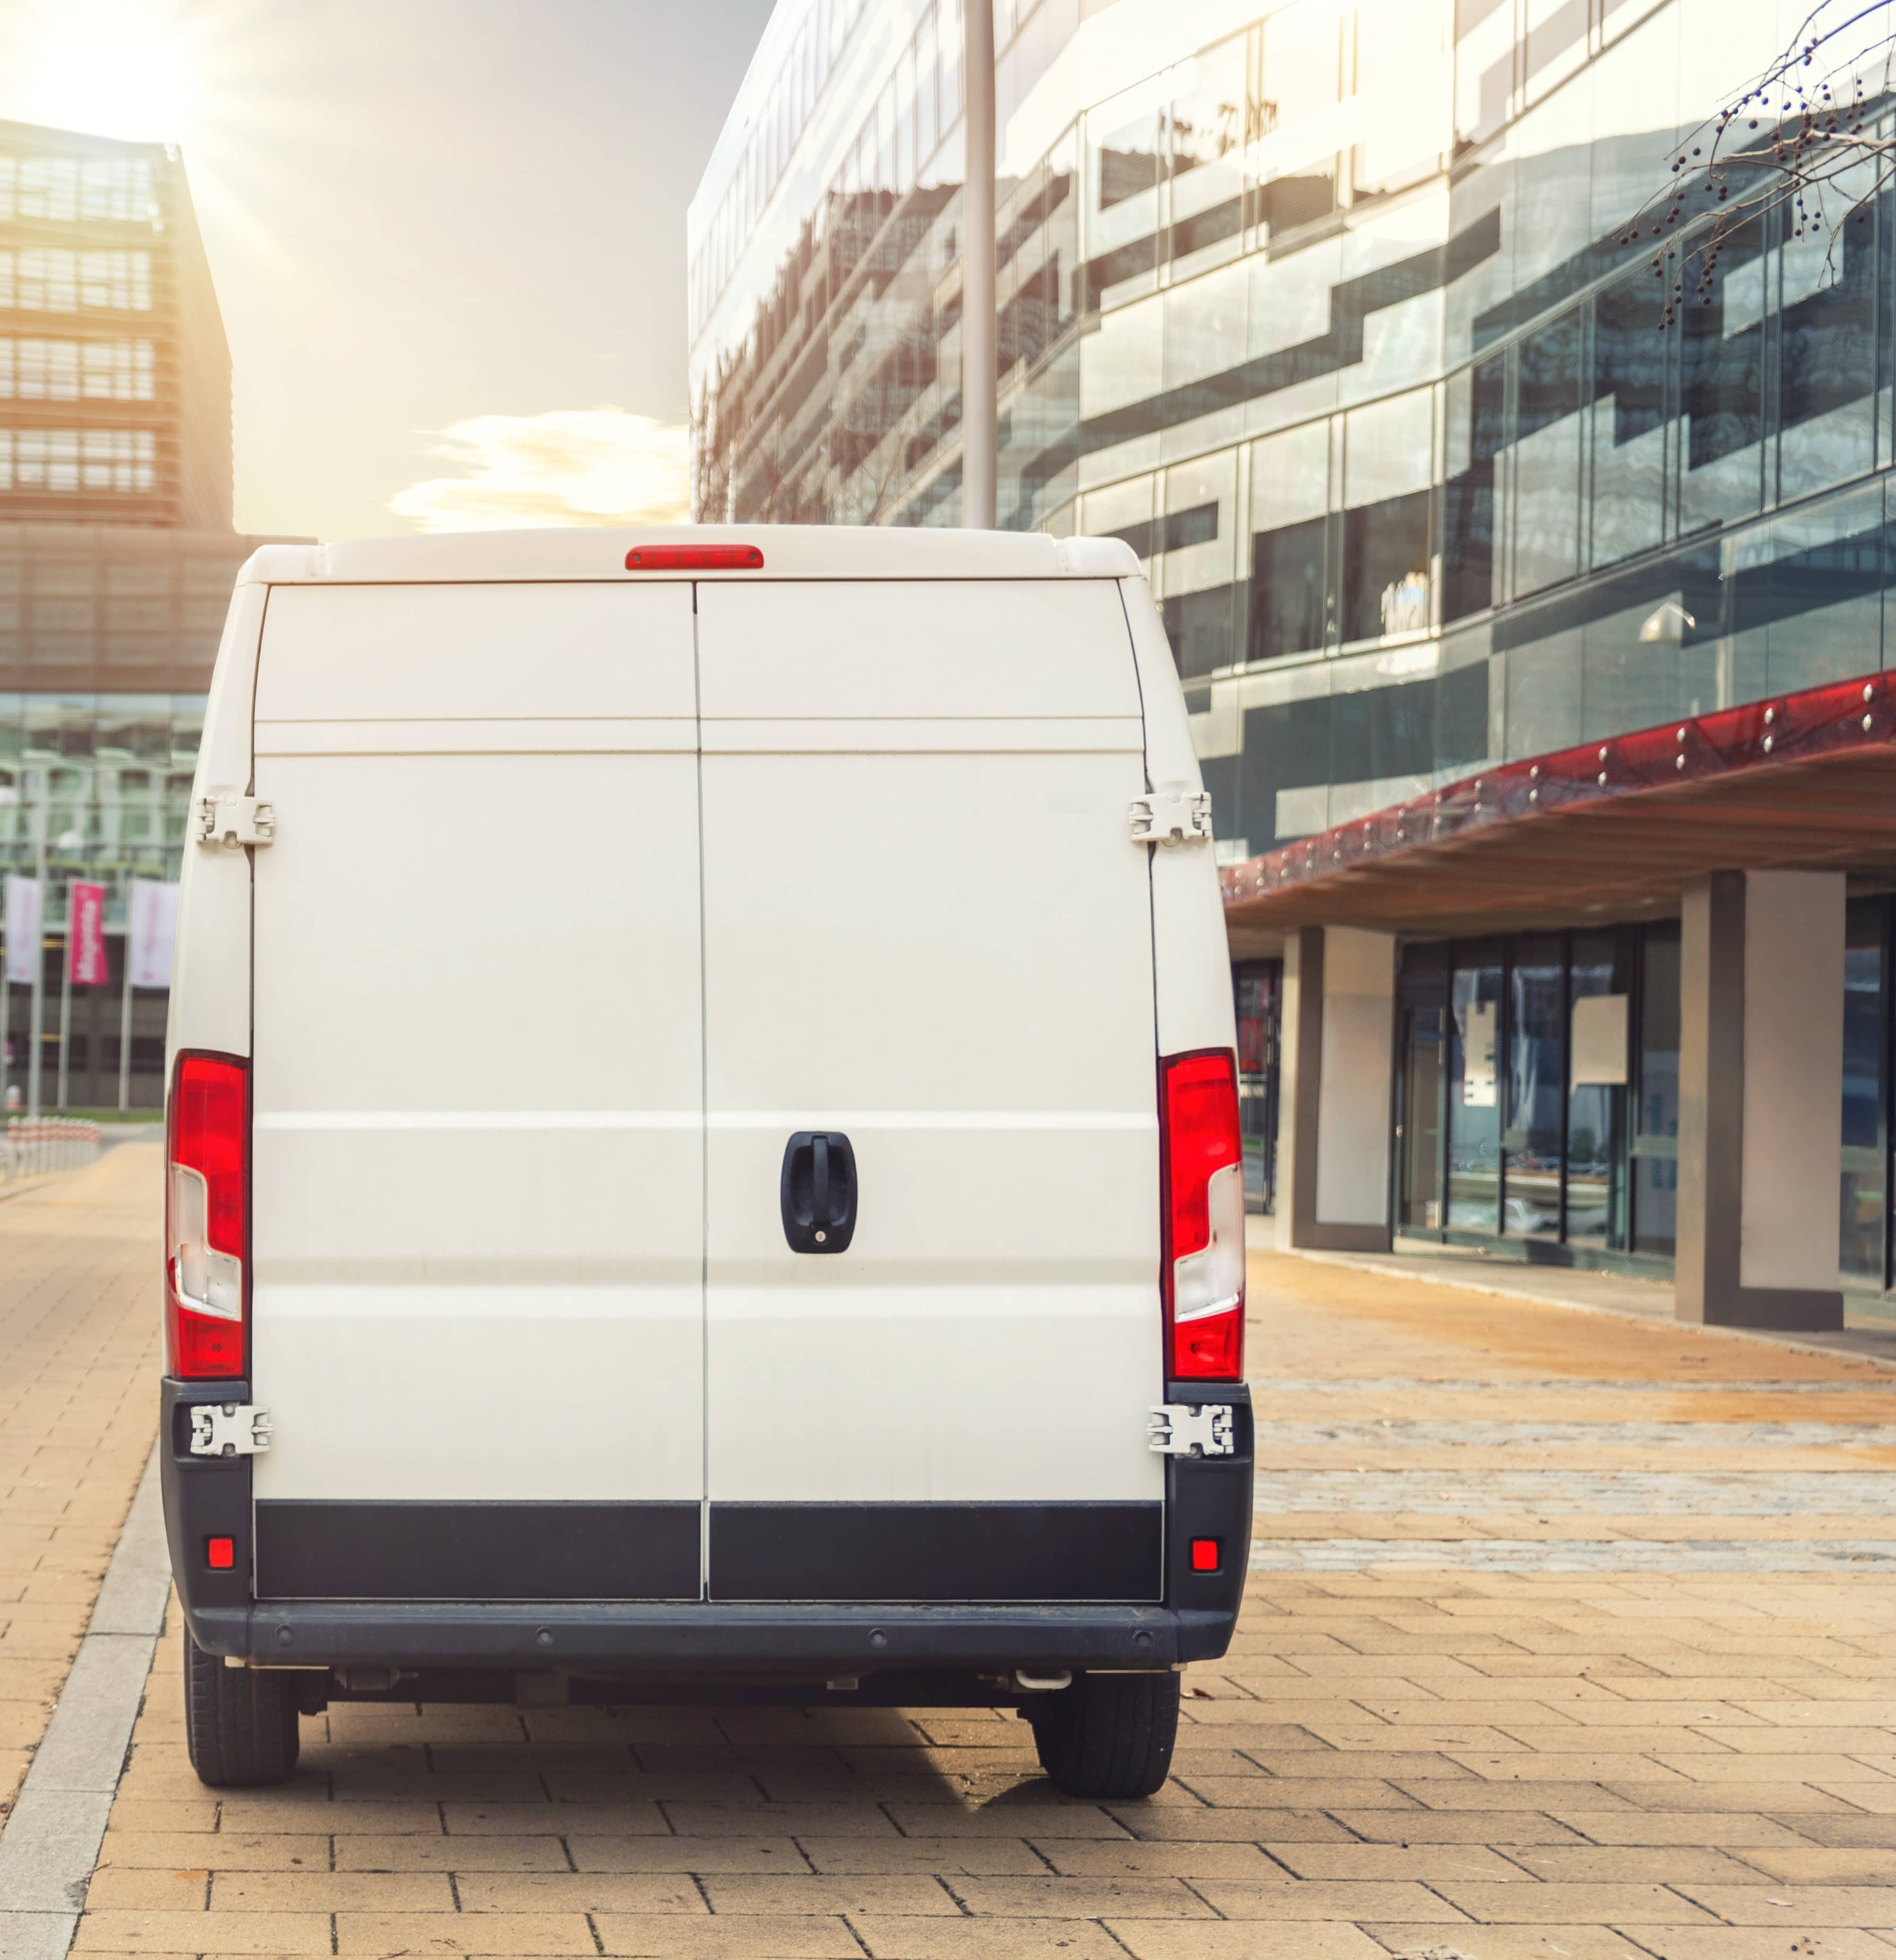 Small cargo delivery van driving in european city central district. Medium lorry minivan courier vehicle deliver package at residential office building in downtown area. Commercial shipping logistics.